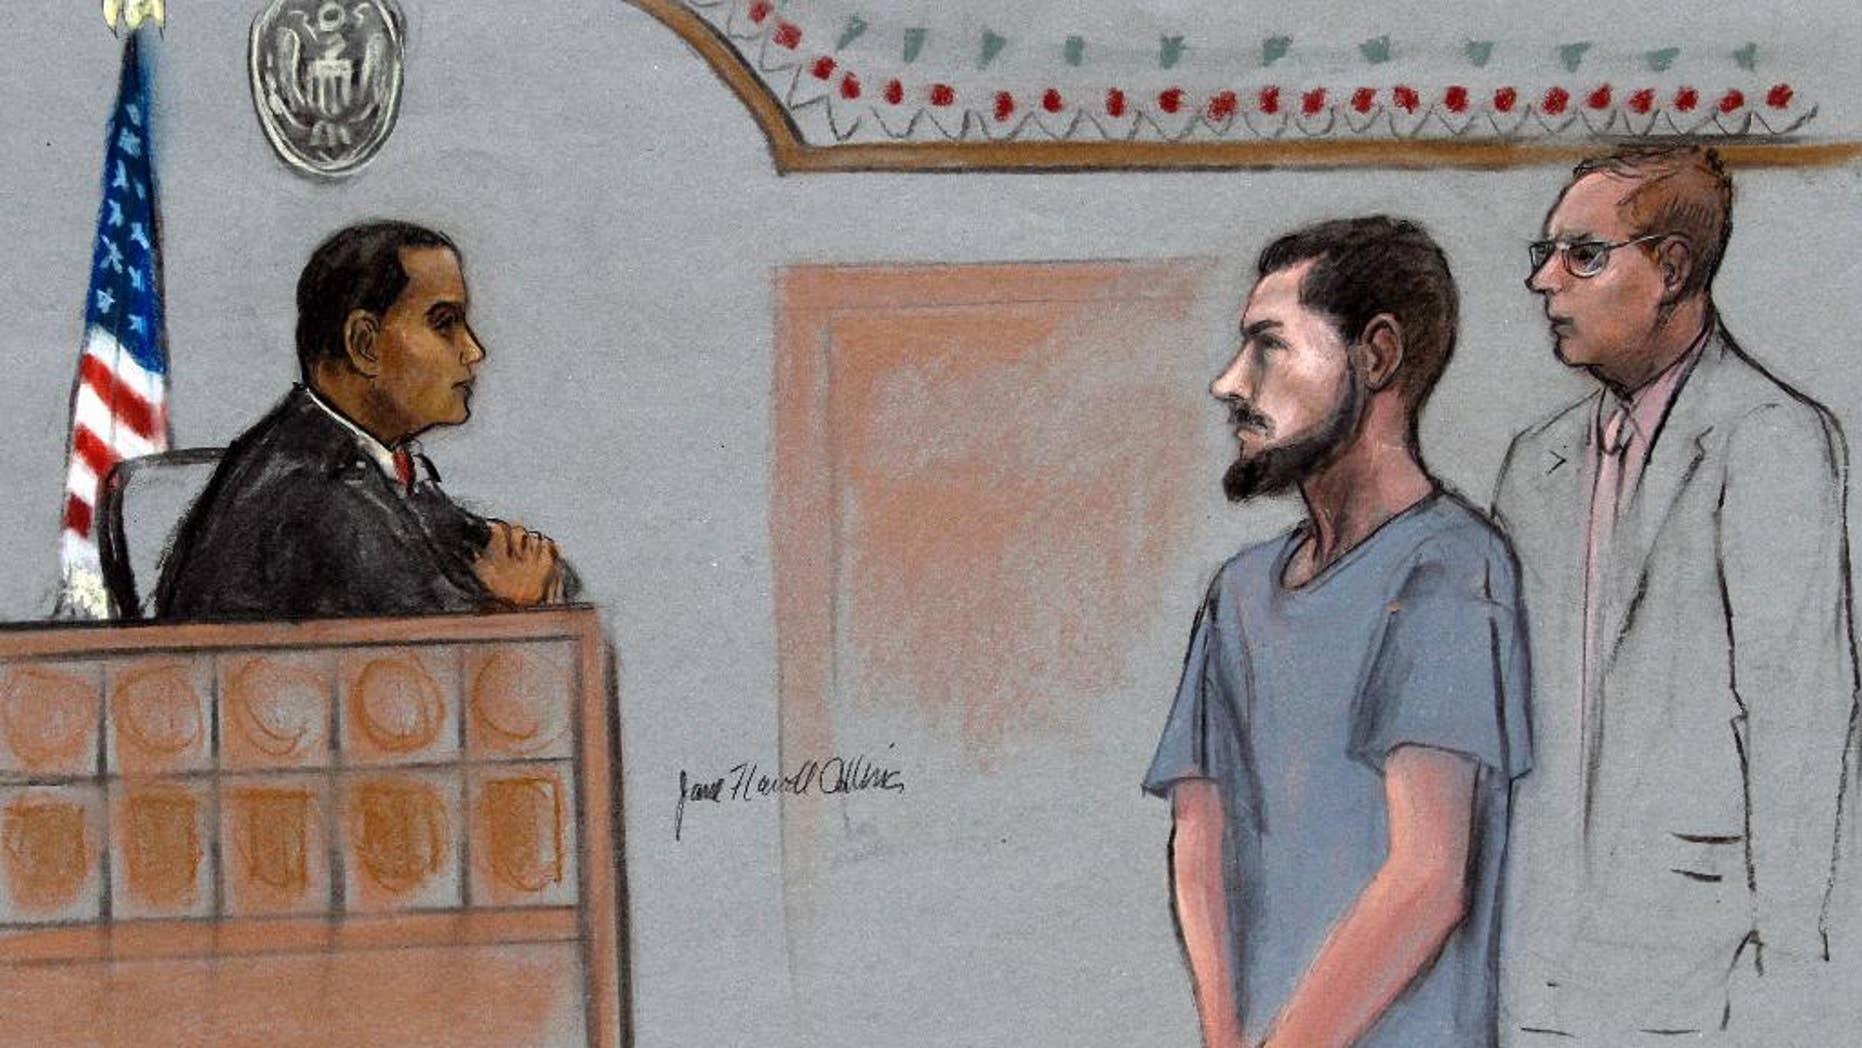 File - In this Friday, June 12, 2015, file courtroom sketch, Nicholas Rovinski, second from right, of Warwick, R.I., is depicted standing with his attorney William Fick, right, as Magistrate Judge Donald Cabell, left, presides during a hearing in federal court in Boston. In a change-of-plea hearing Thursday, Sept. 22, 2016, Rovinski pled guilty to multiple federal charges including conspiracy to commit acts of terrorism transcending national boundaries. Prosecutors say he conspired with Massachusetts men to kill conservative blogger Pamela Geller. The plot was not carried out. (Jane Flavell Collins via AP, File)